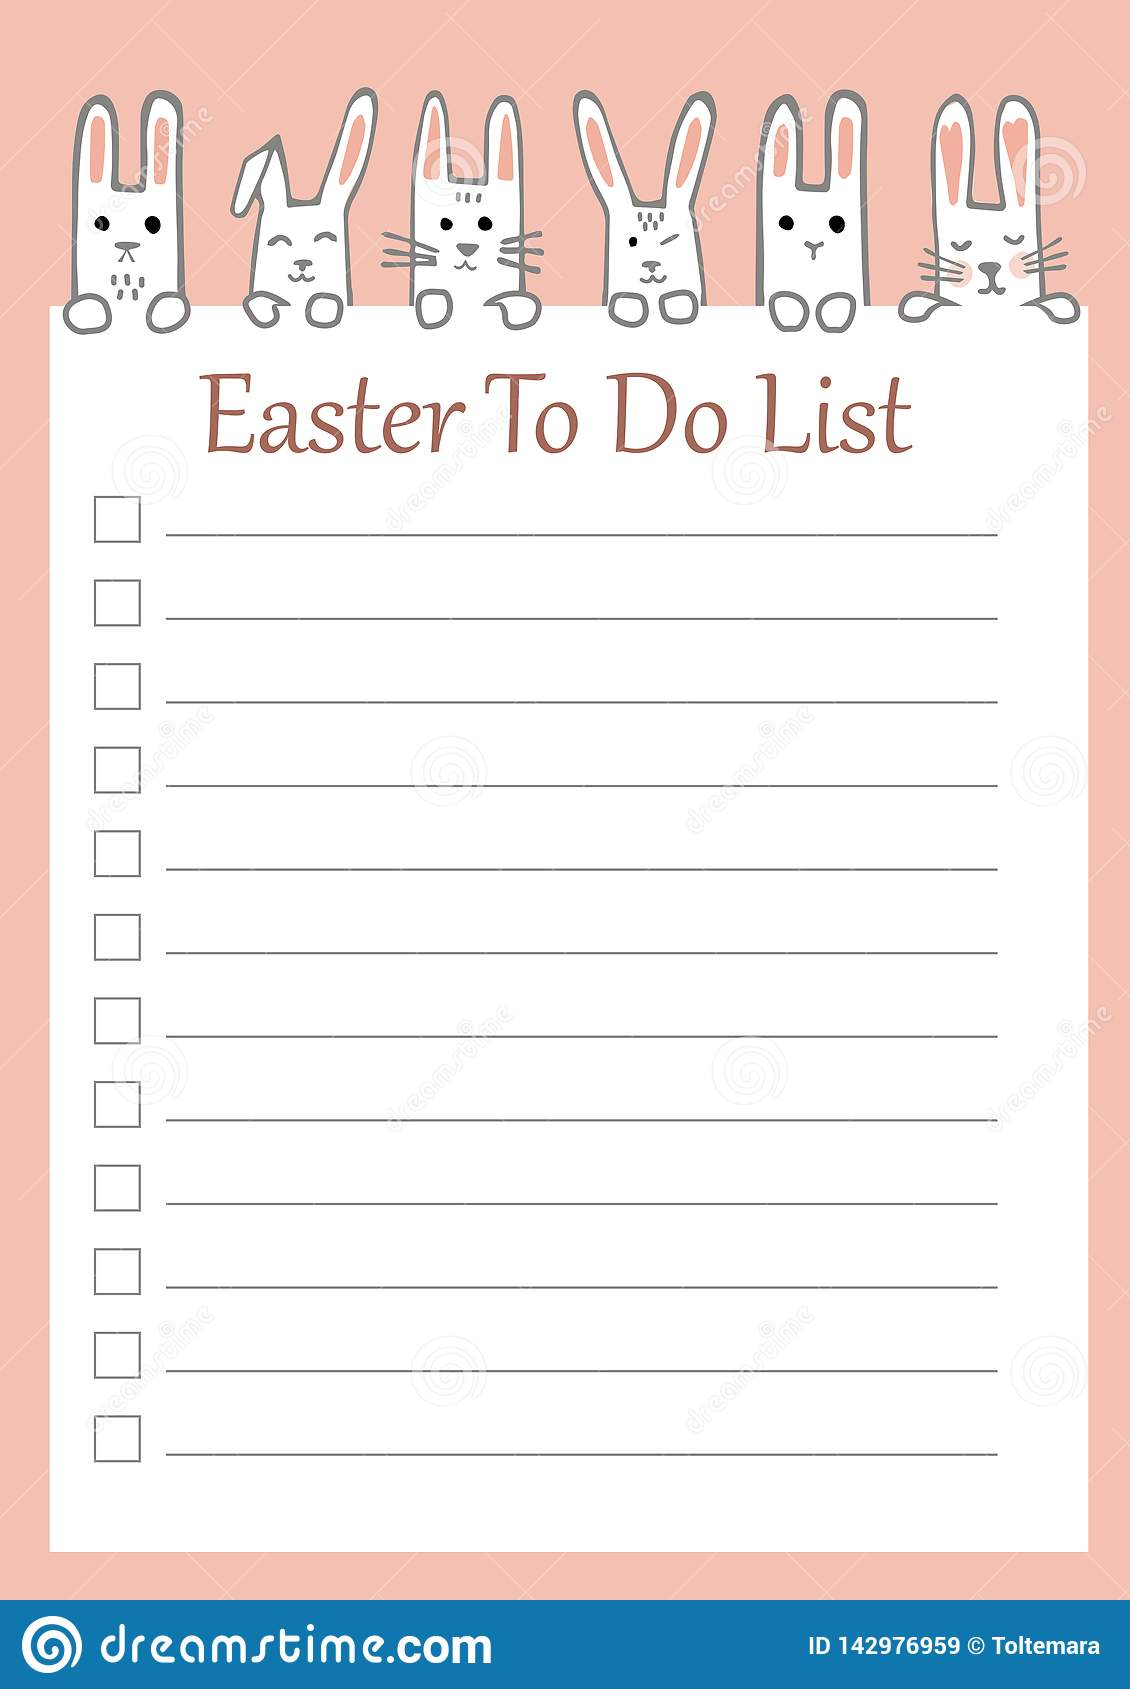 photograph about Easter Stationery Printable identify Vector Easter Toward Do Checklist With Amusing Bunnies. Printable